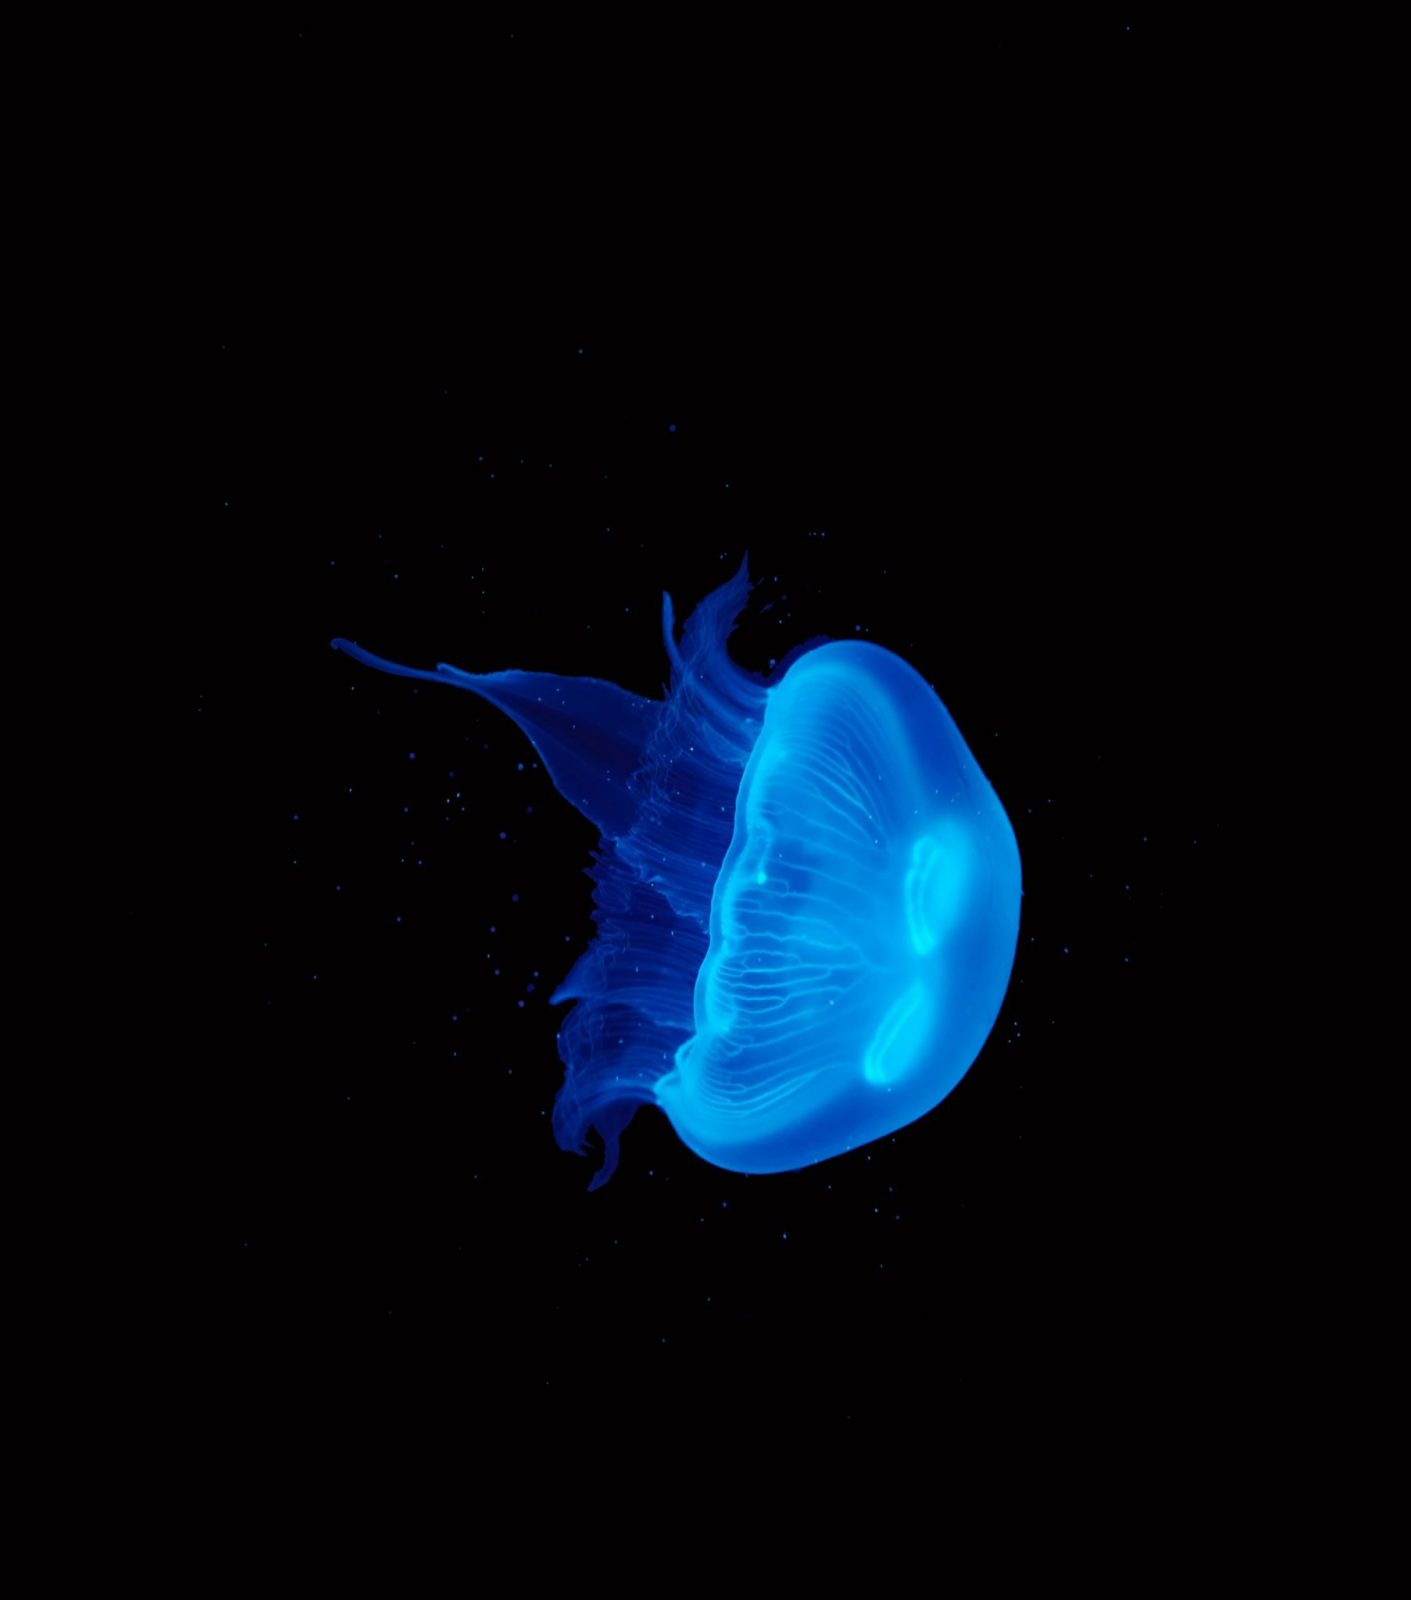 Medium Moon Jellyfish